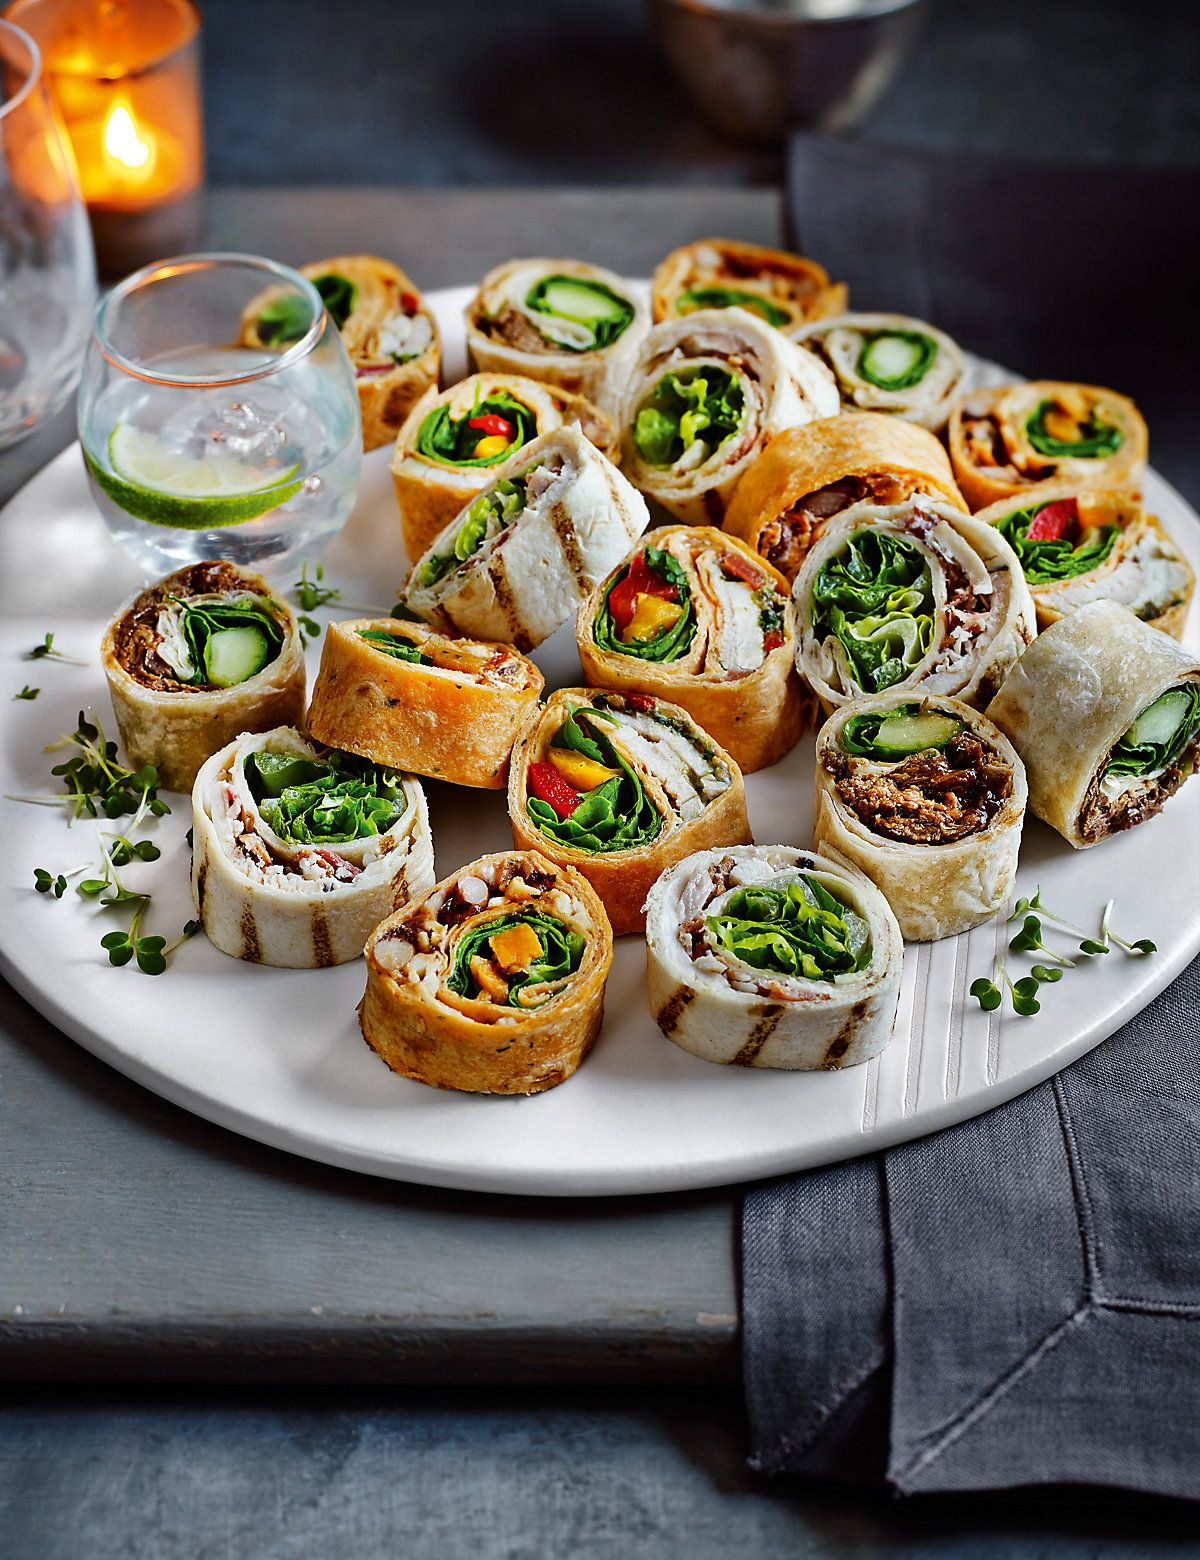 Party Essen Ideen Party Mini Wrap Slices (20 Pieces) | M&s | Fingerfood, Fingerfood Rezepte, Rezepte